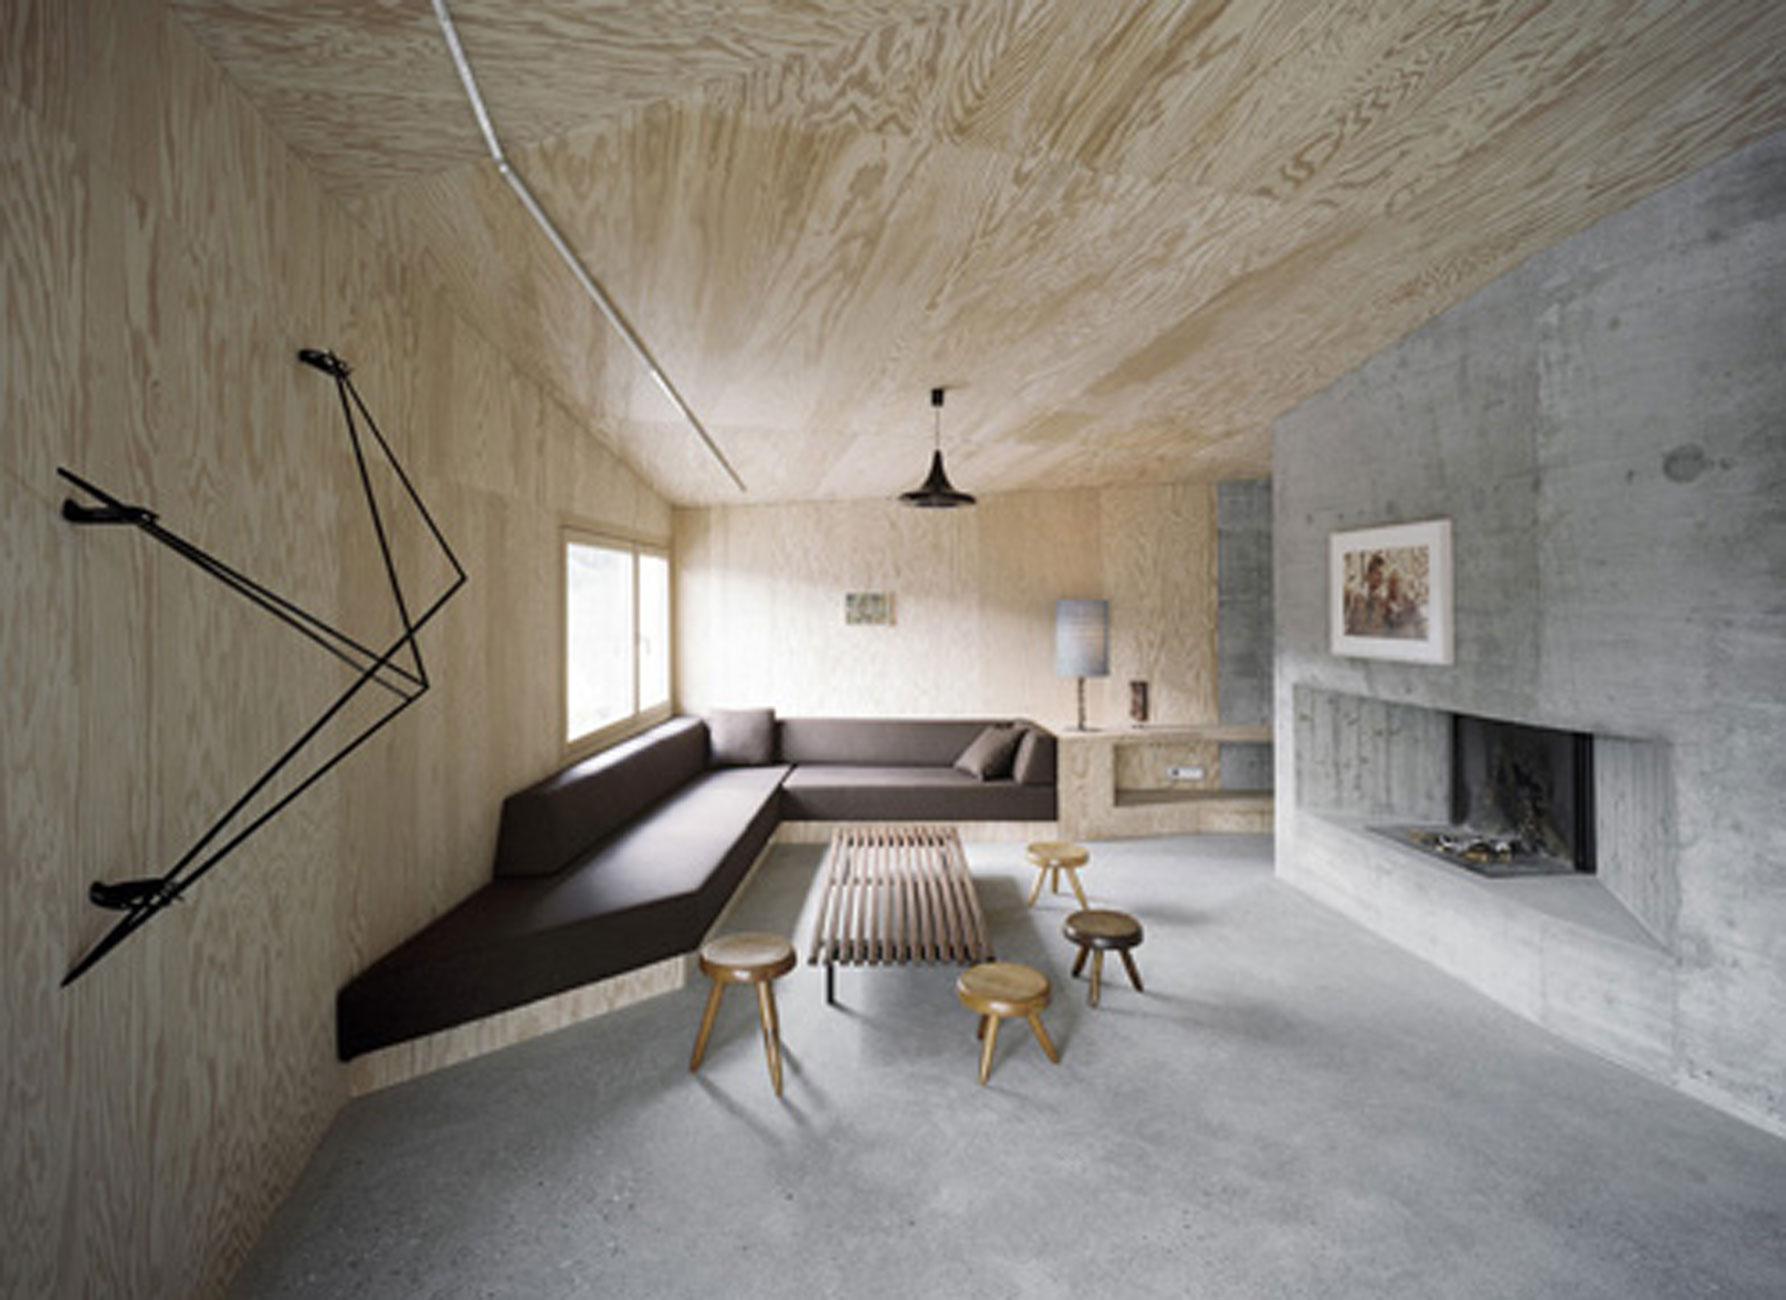 Solid Concrete House Architecture and Minimalist Interior Design ...